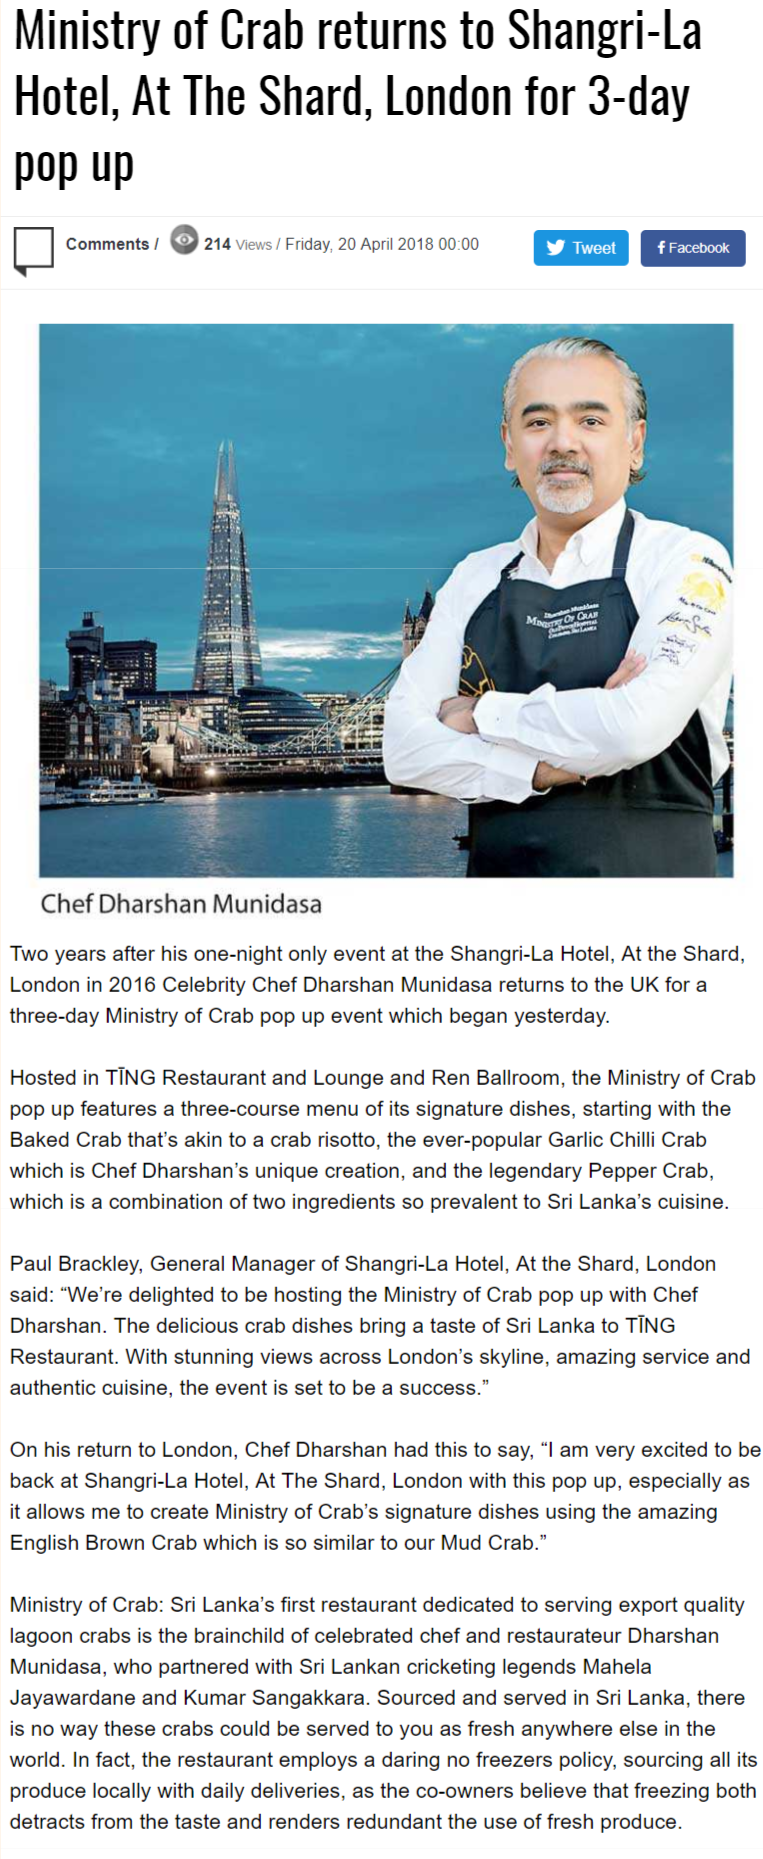 Ministry Of Crab Returns To Shangri-La Hotel, At The Shard, London For 3-Day Pop Up